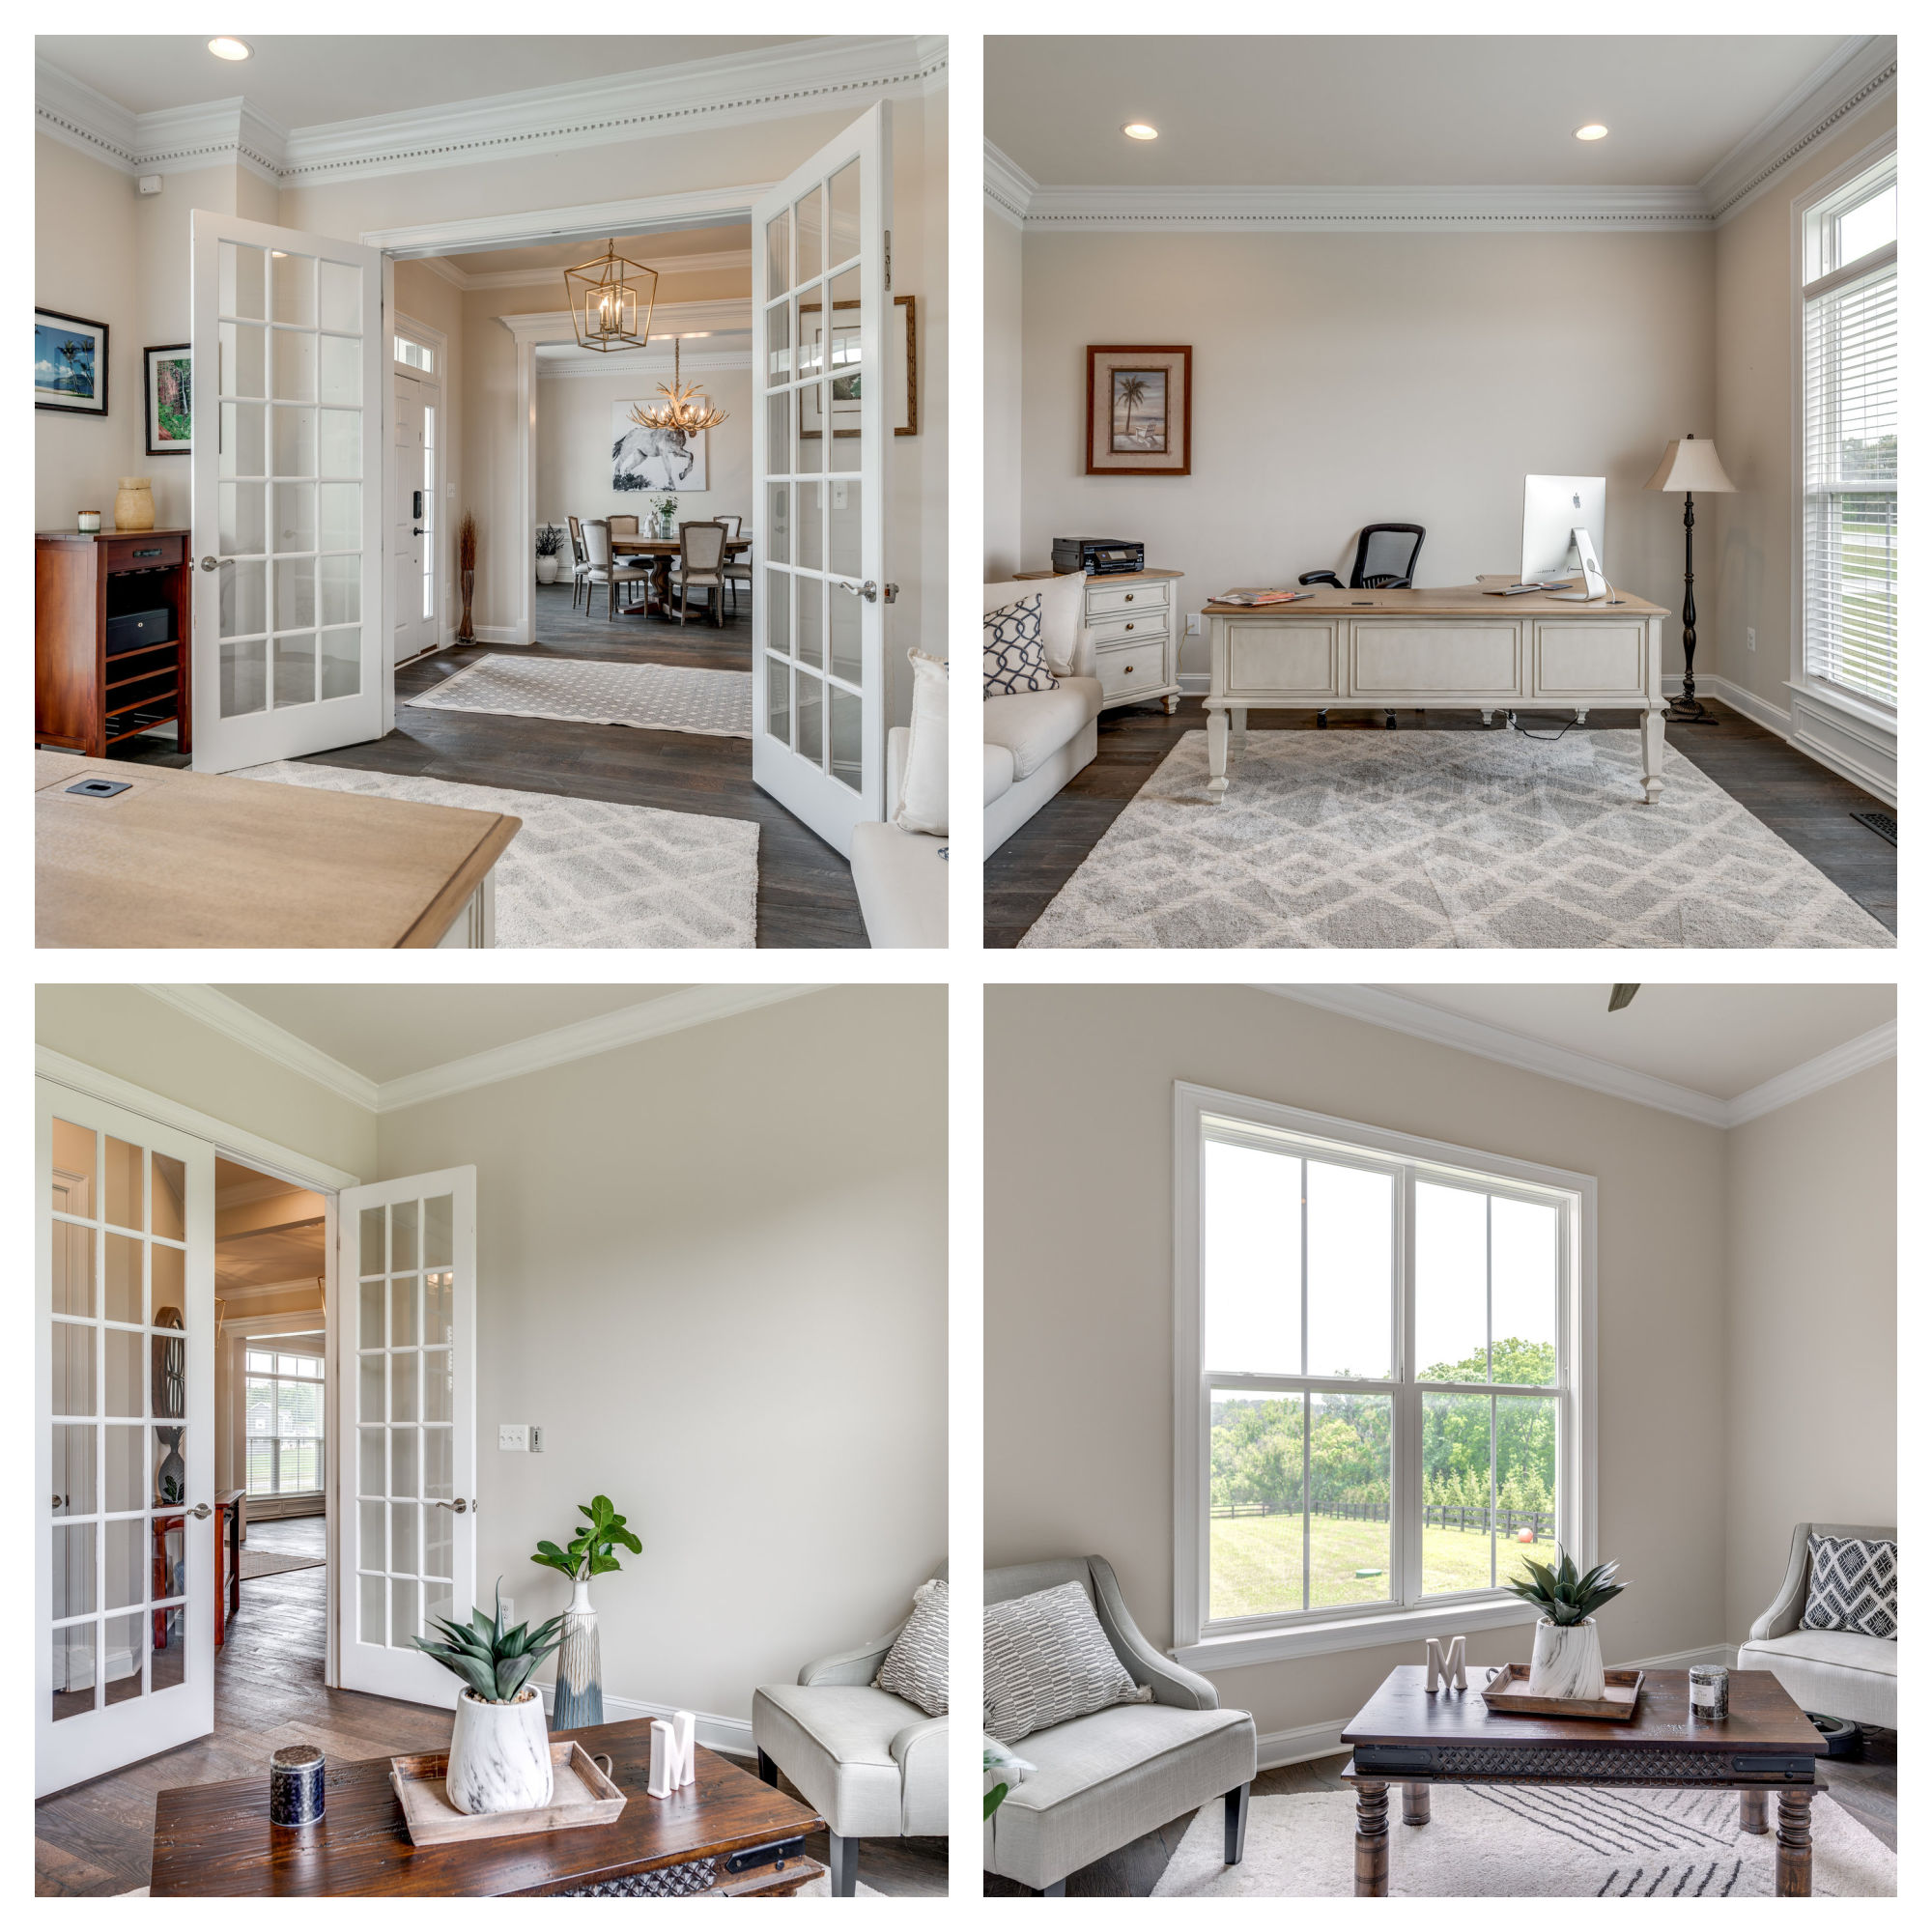 35664 Sweet Branch Ct, Purcellville- Office and Den